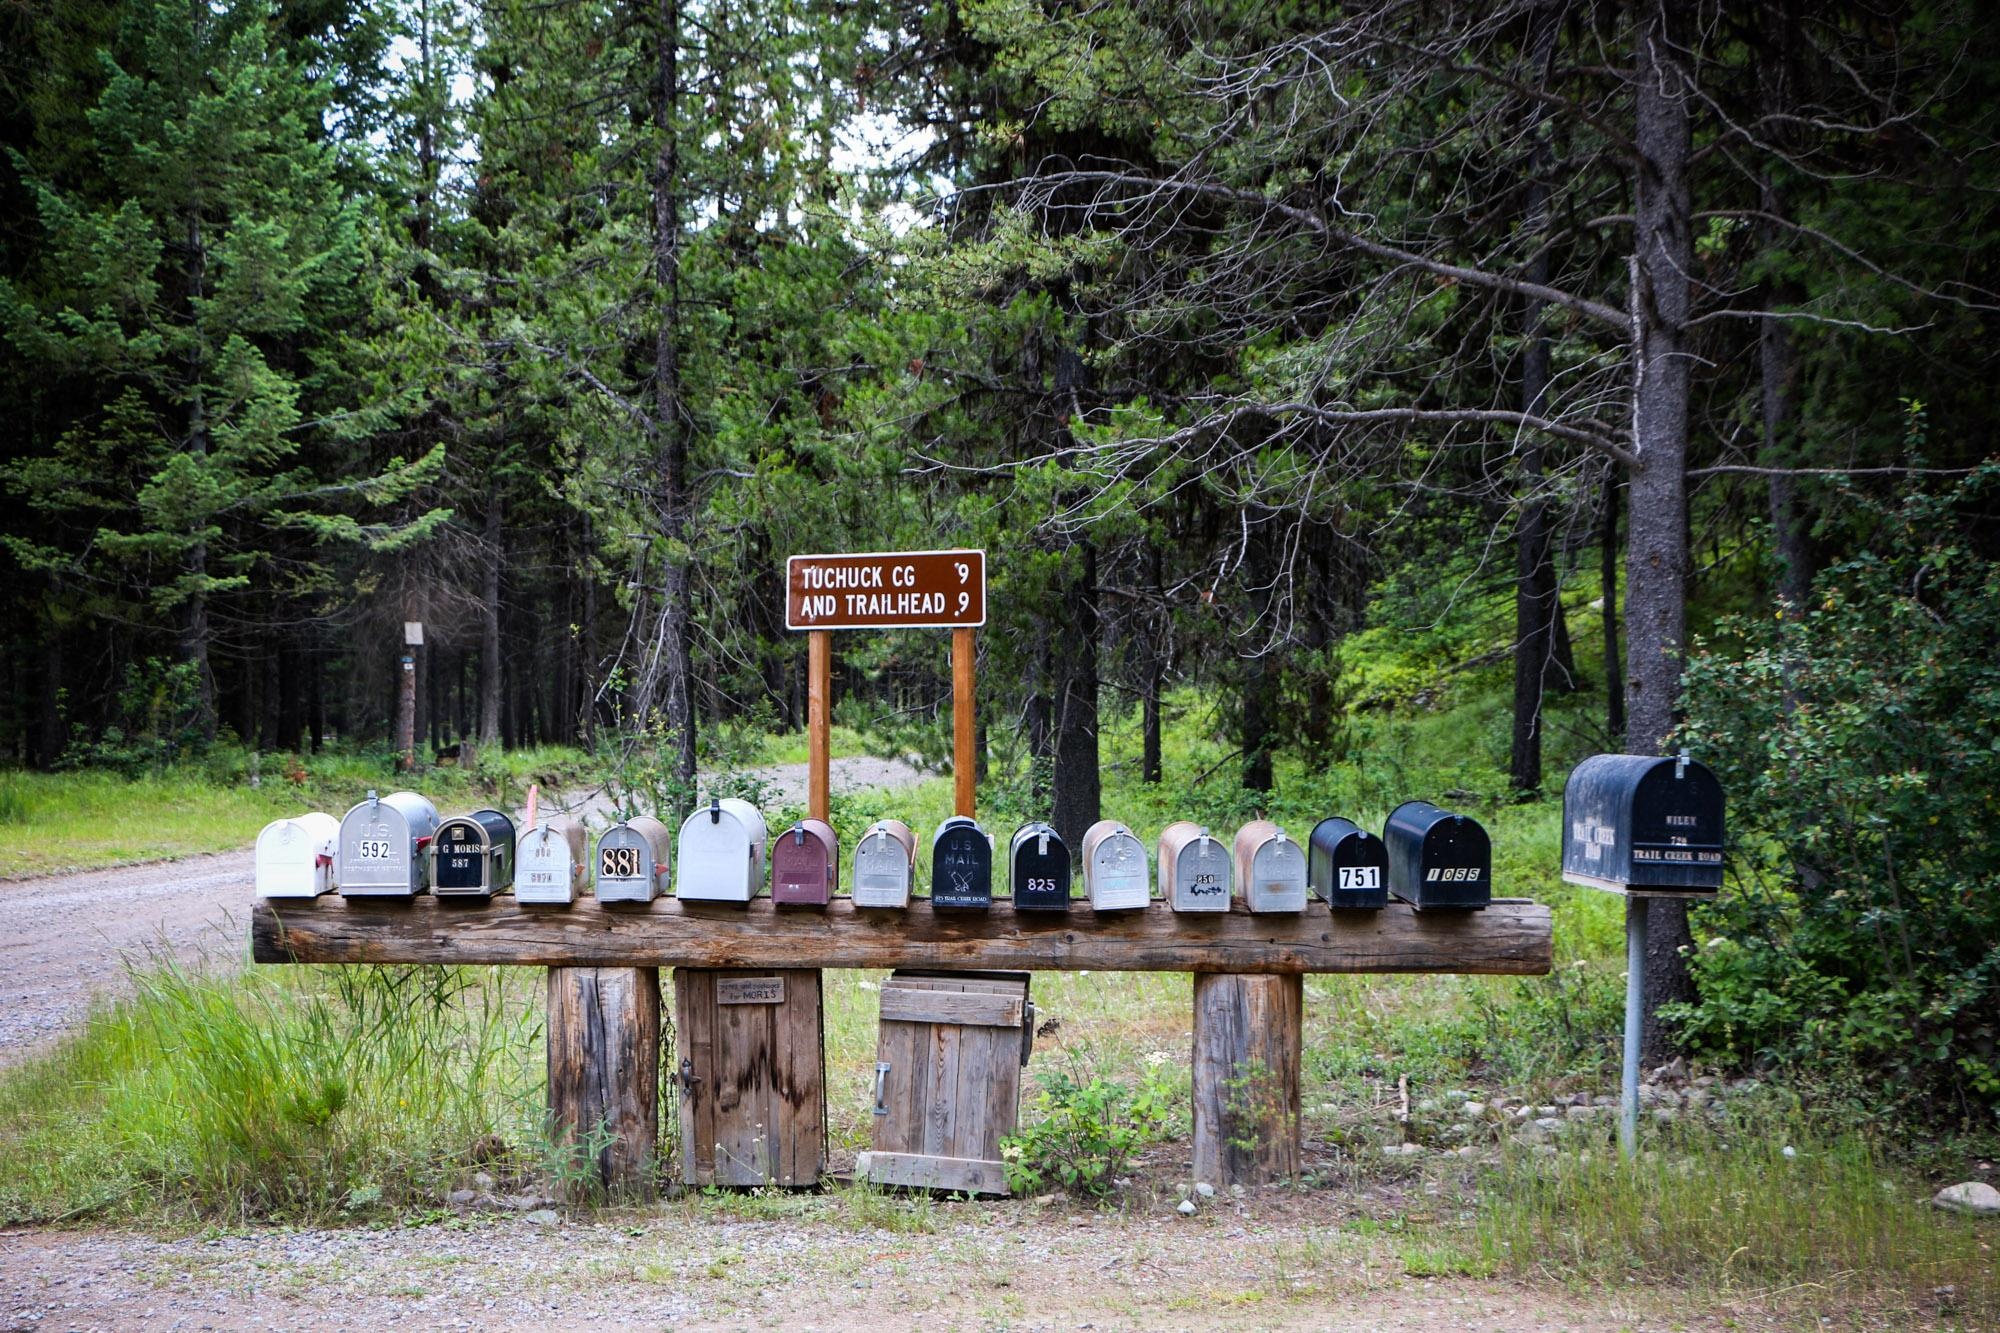 Mail boxes in this area of the country are all unique.